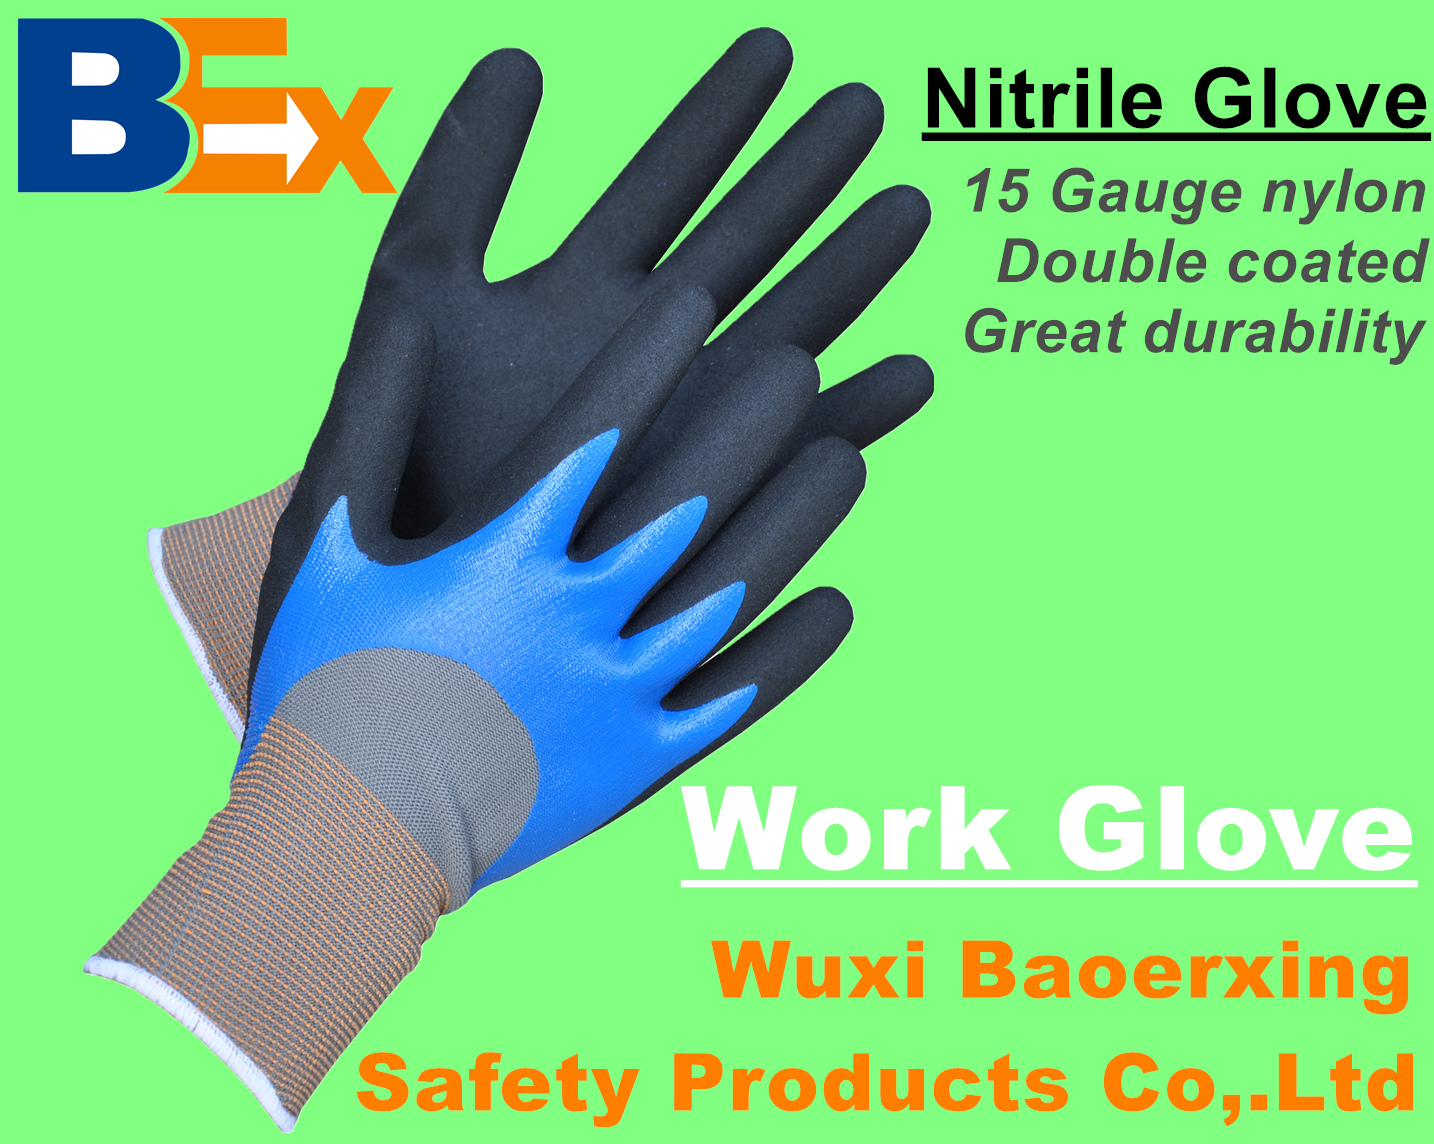 Catalogue of work glove from